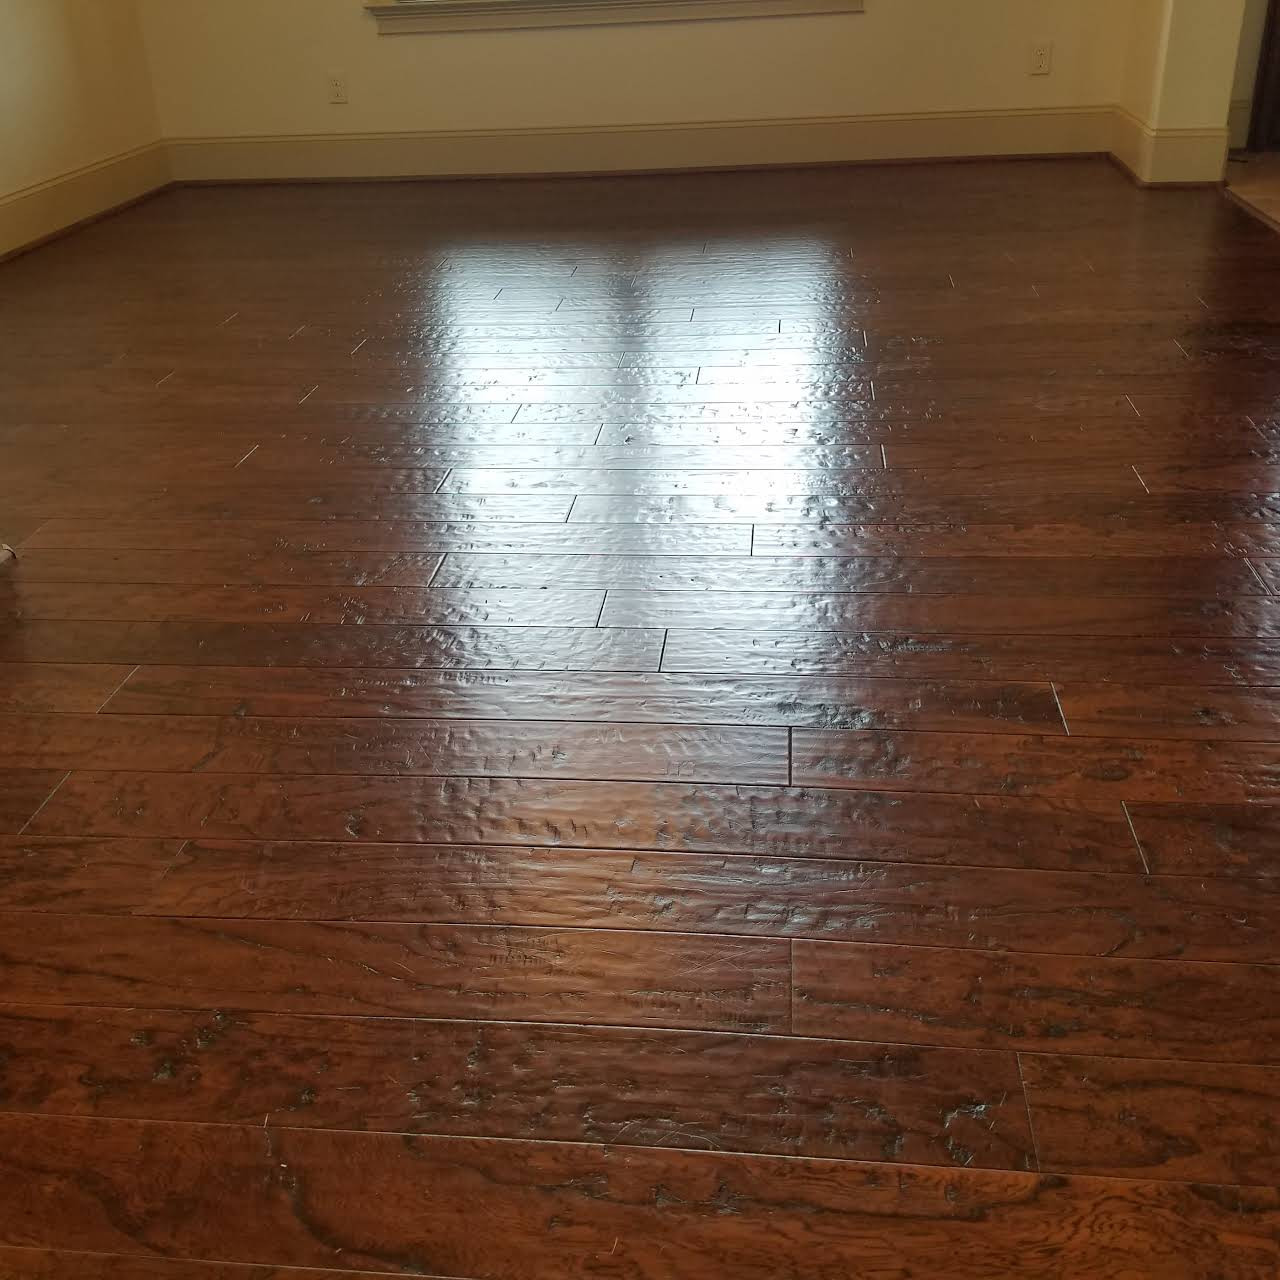 professional hardwood floor cleaning service of cleaning superhero carpet and rug cleaning service in birmingham in hardwood floor cl